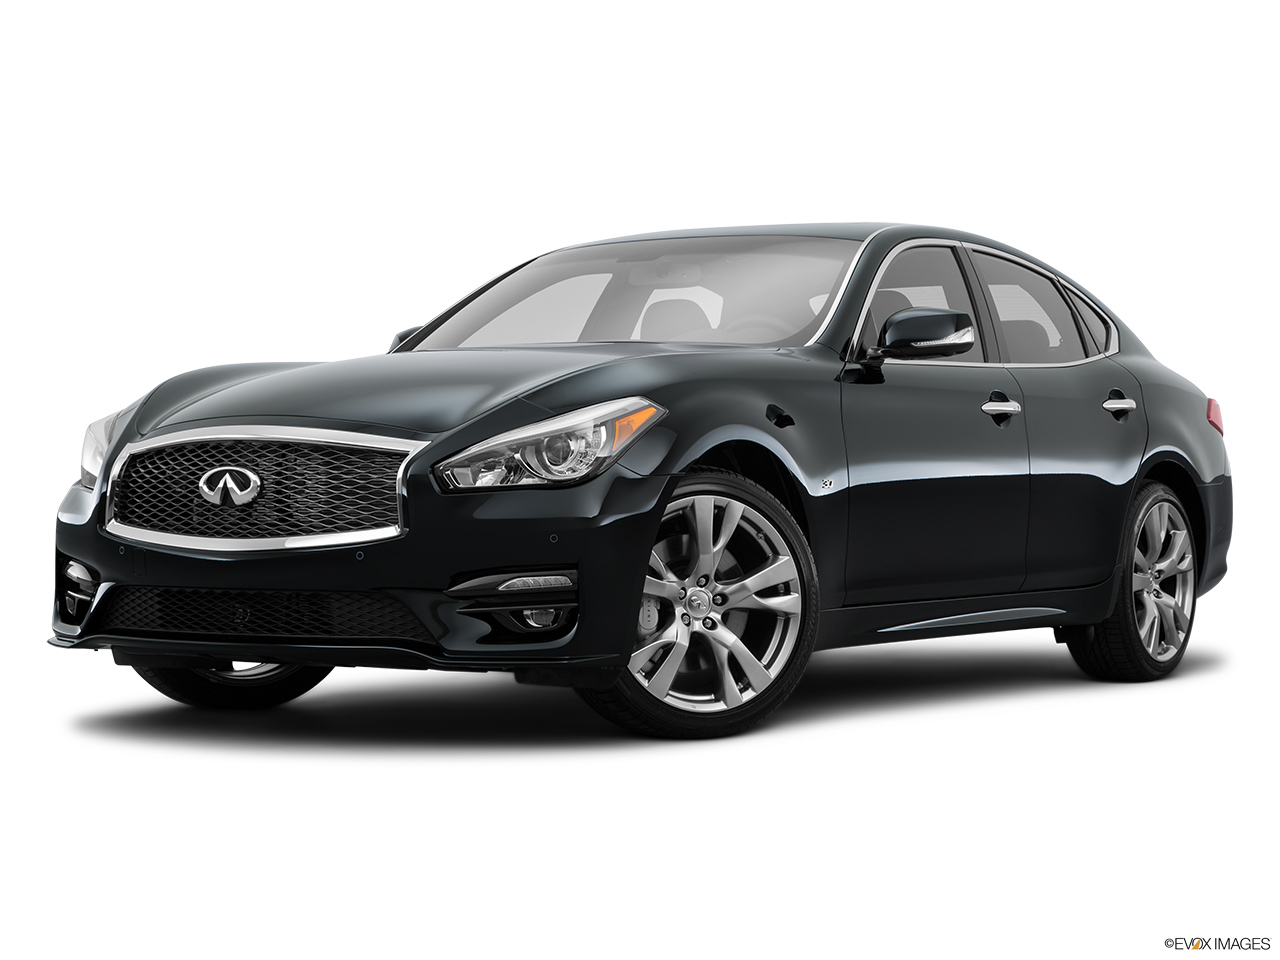 2015 infiniti q70 for sale cargurus used cars new. Black Bedroom Furniture Sets. Home Design Ideas